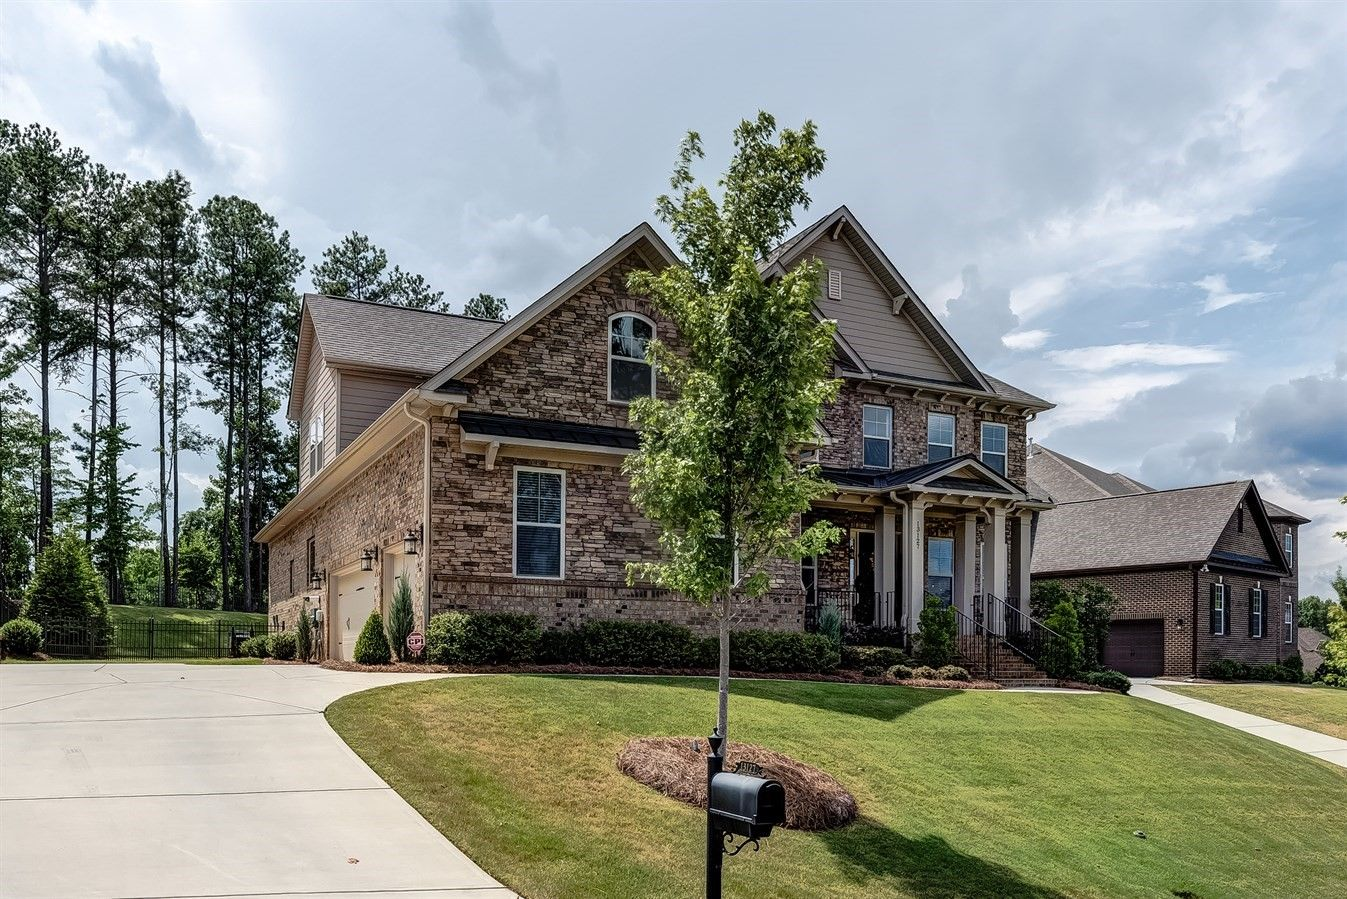 Stunning Open Home On The Golf Course In The Palisades Contact Wendy Richards Keller Williams Realty Ballantyne House Styles Keller Williams Realty Realty